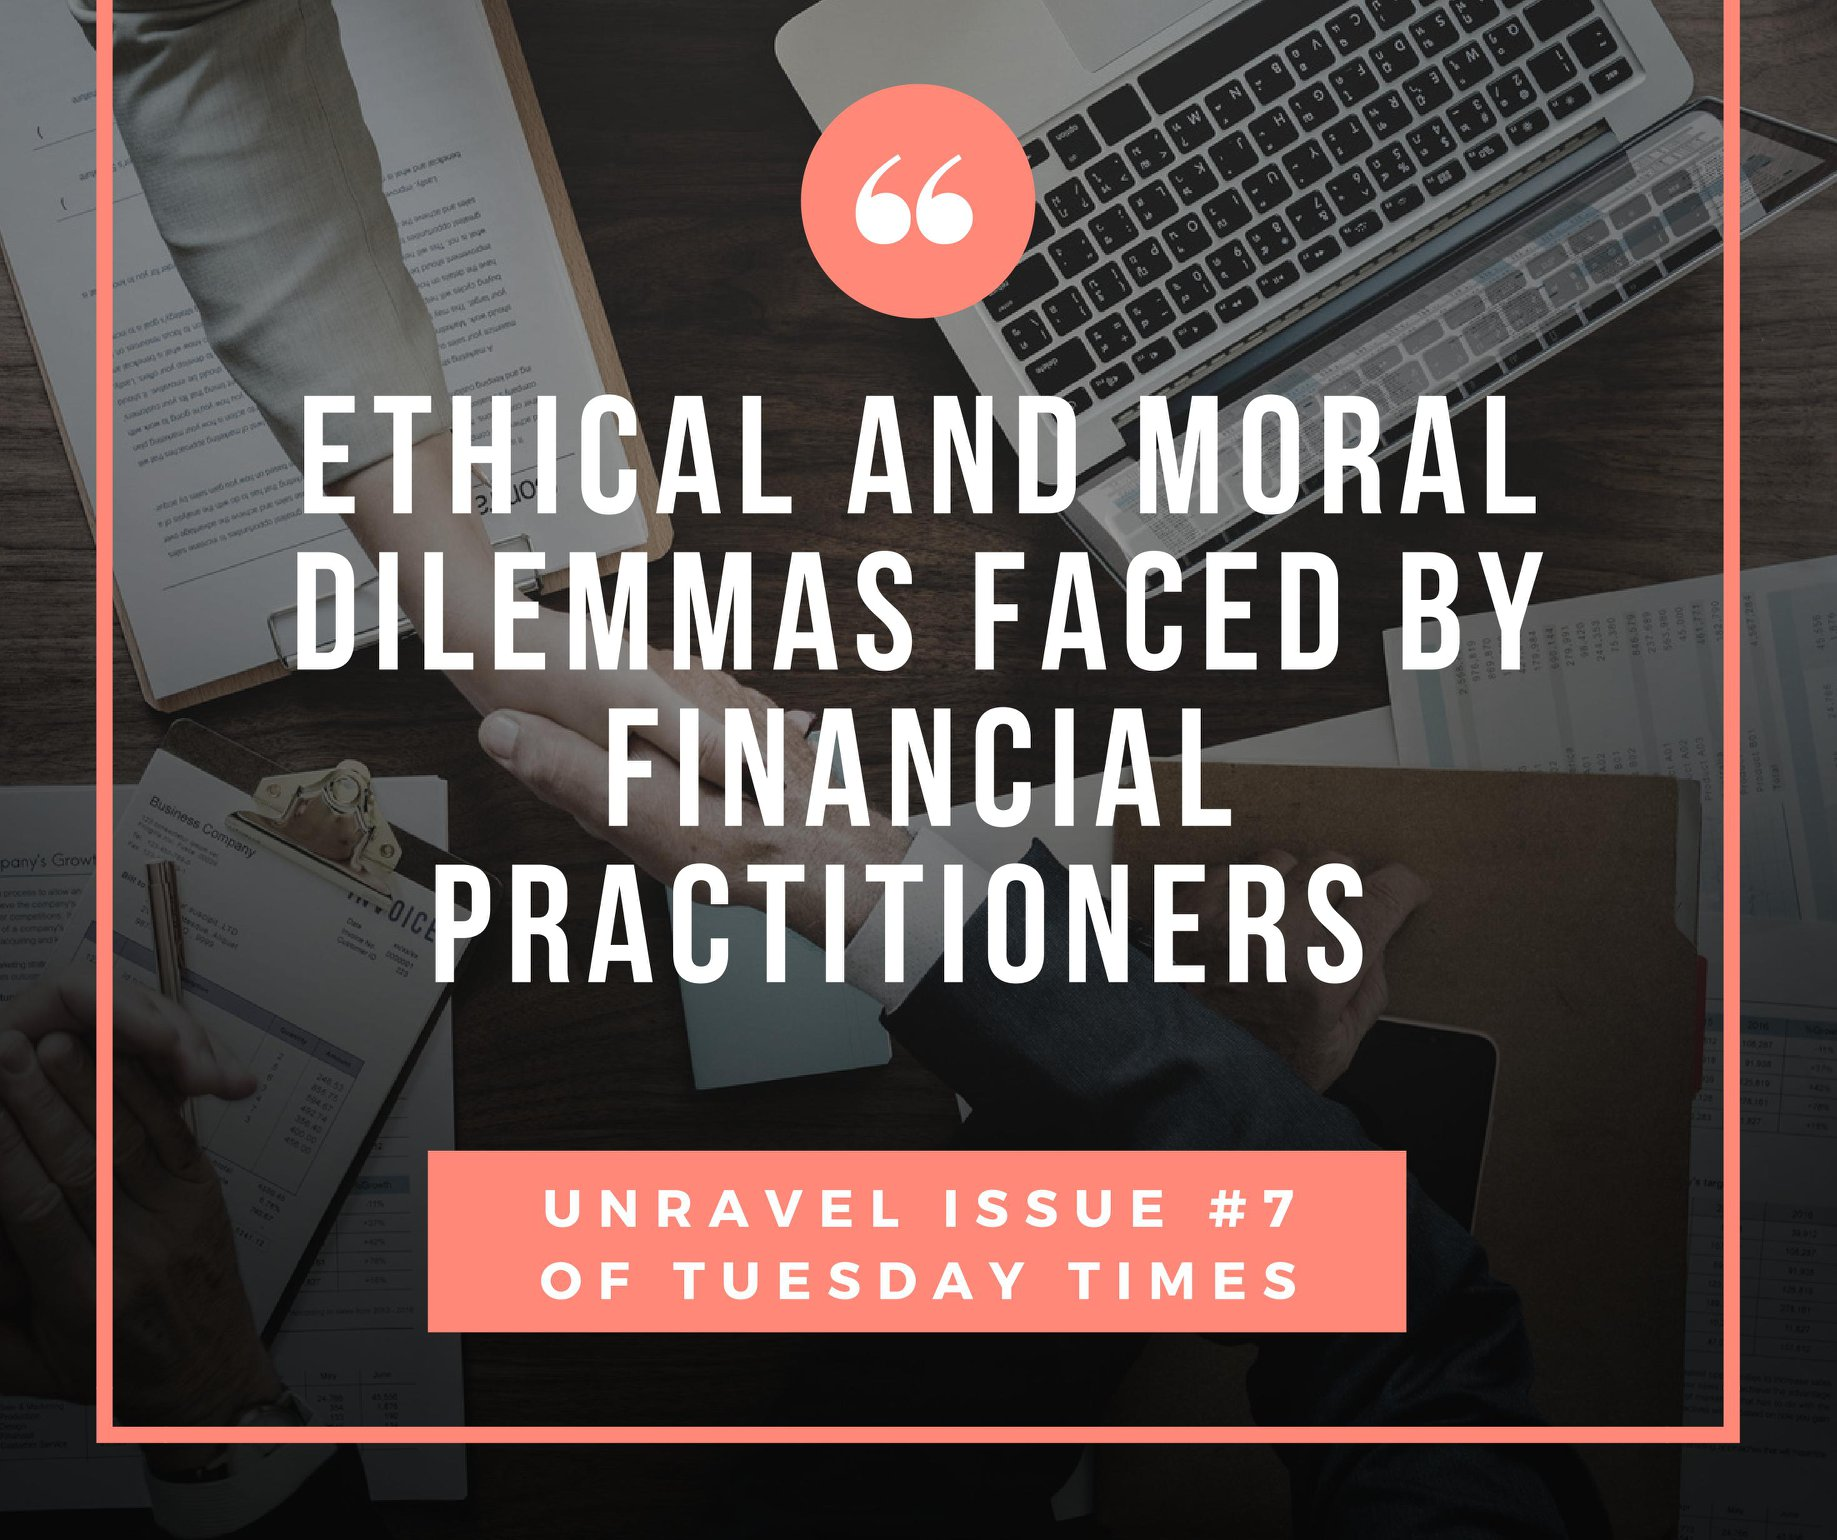 Ethical and Moral Dilemmas Faced By Financial Practitioners